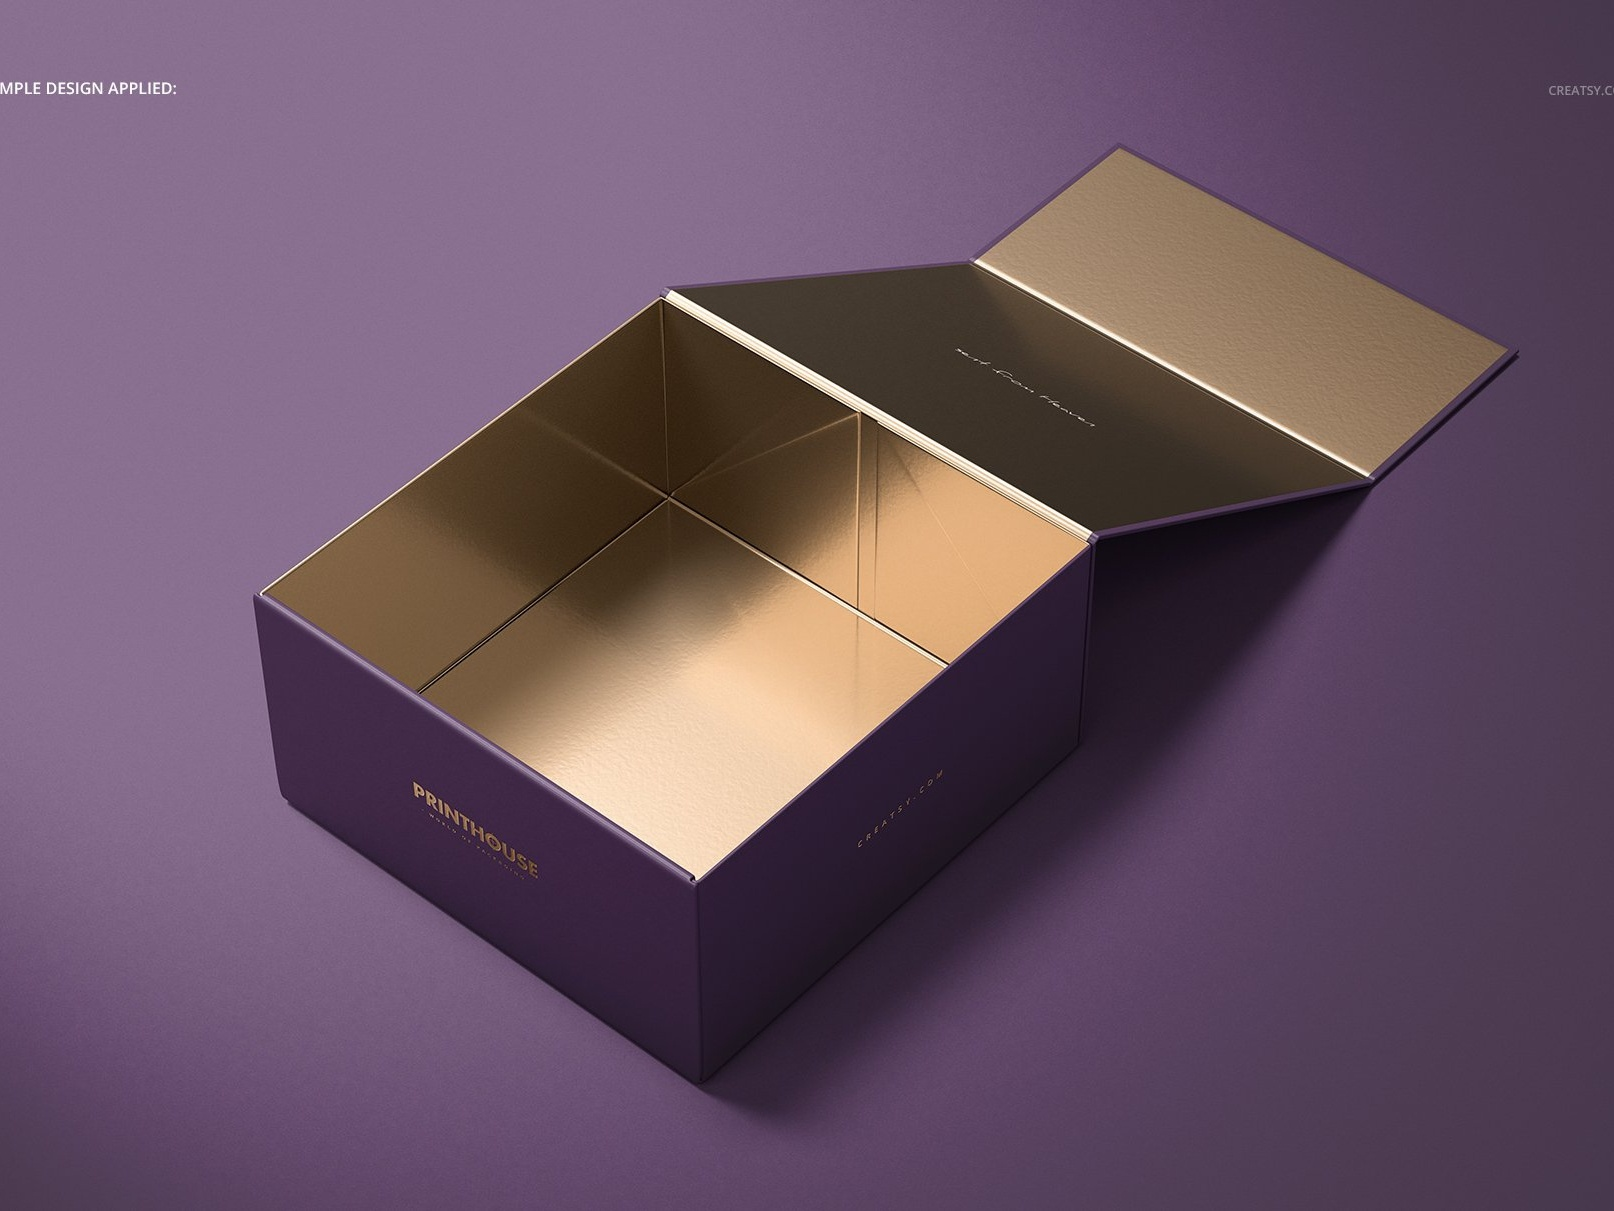 Magnetic Gift Box Mockup Set 02 By Mockup5 On Dribbble